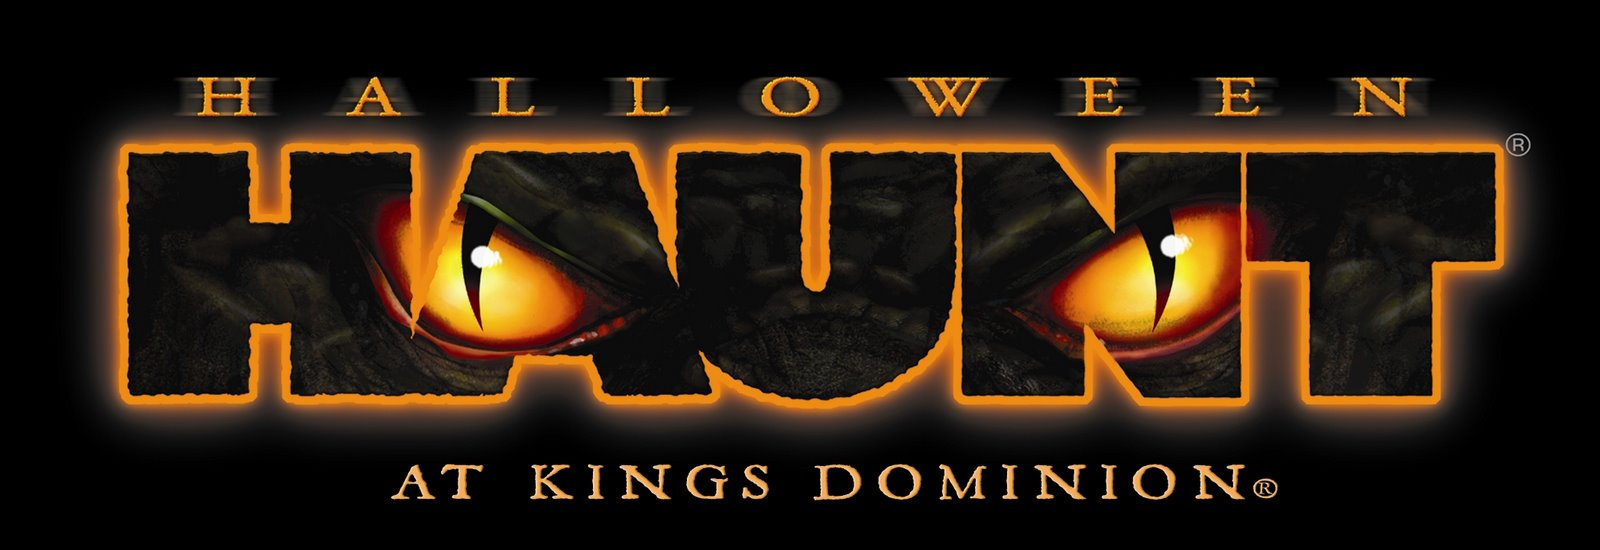 Halloween Haunt is an annual Halloween event at Kings Dominion. It debuted in as FearFest, [45] but was renamed Halloween Haunt in to match other Cedar Fair parks. In , Kings Dominion's Halloween Haunt was voted the second best theme park Halloween event by USA Today.